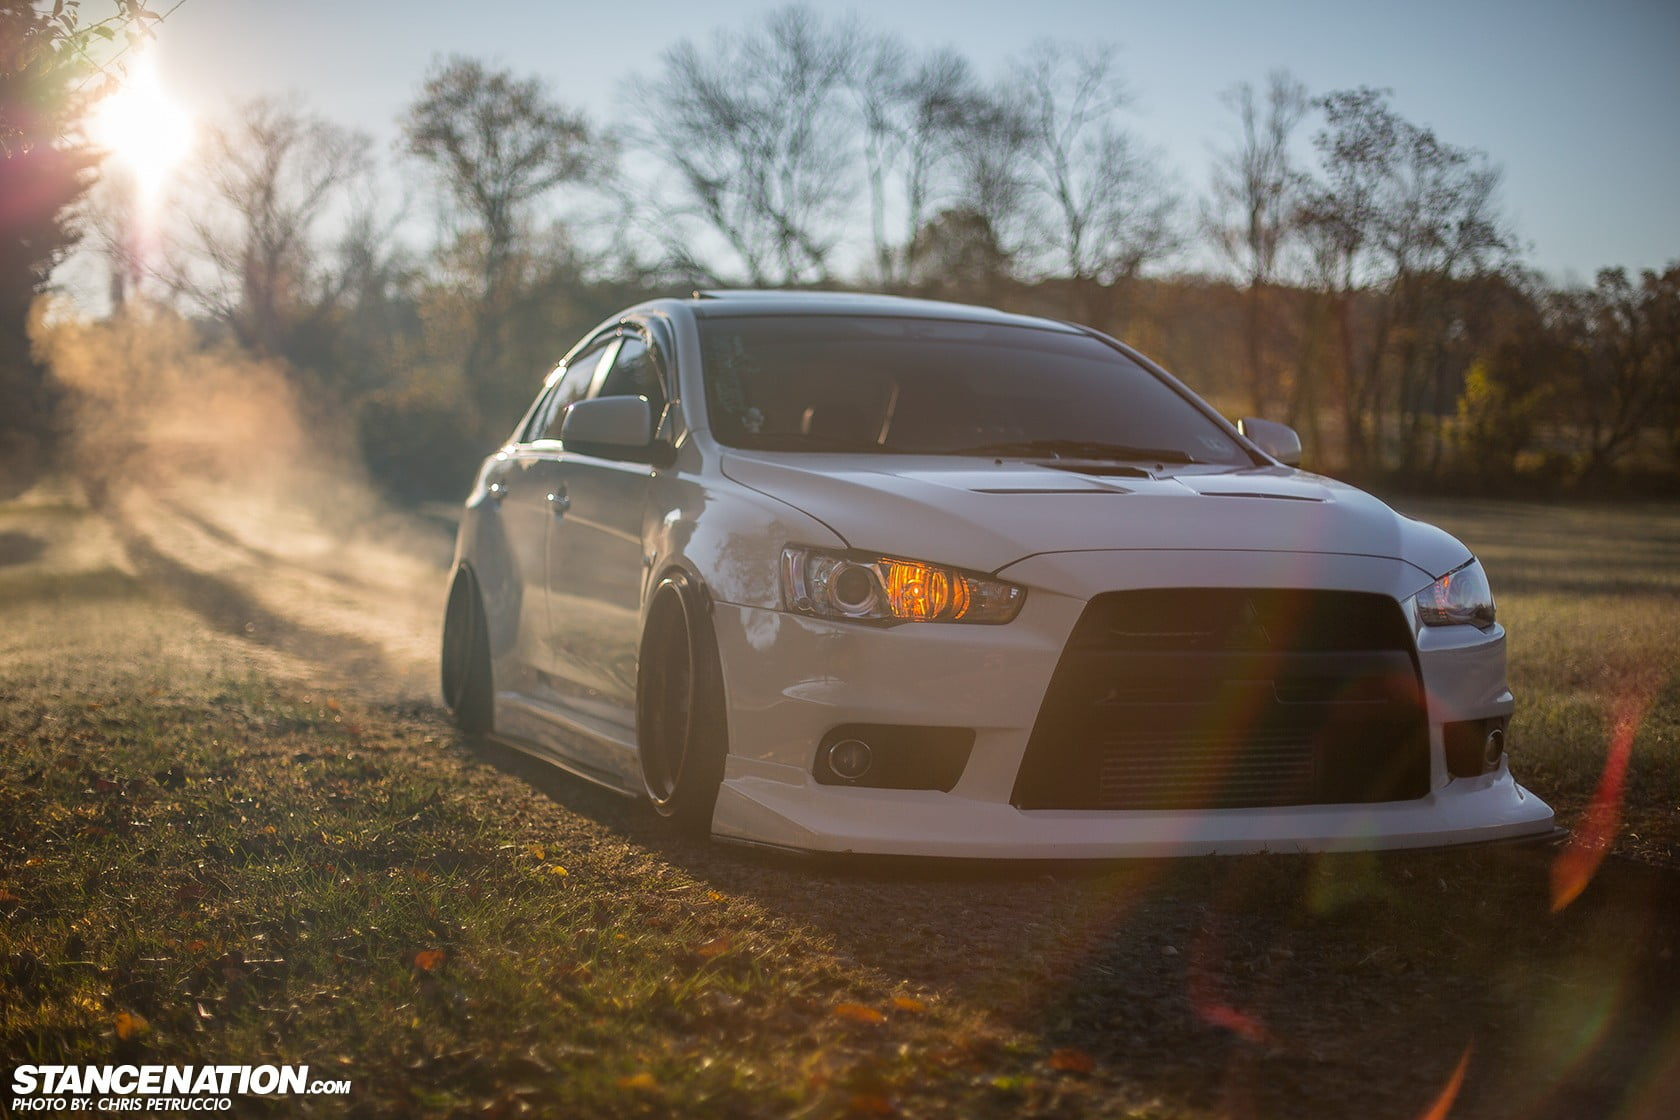 Evo 10 Wallpaper White Sedan Mitsubishi Lancer Evo X Mitsubishi Lancer